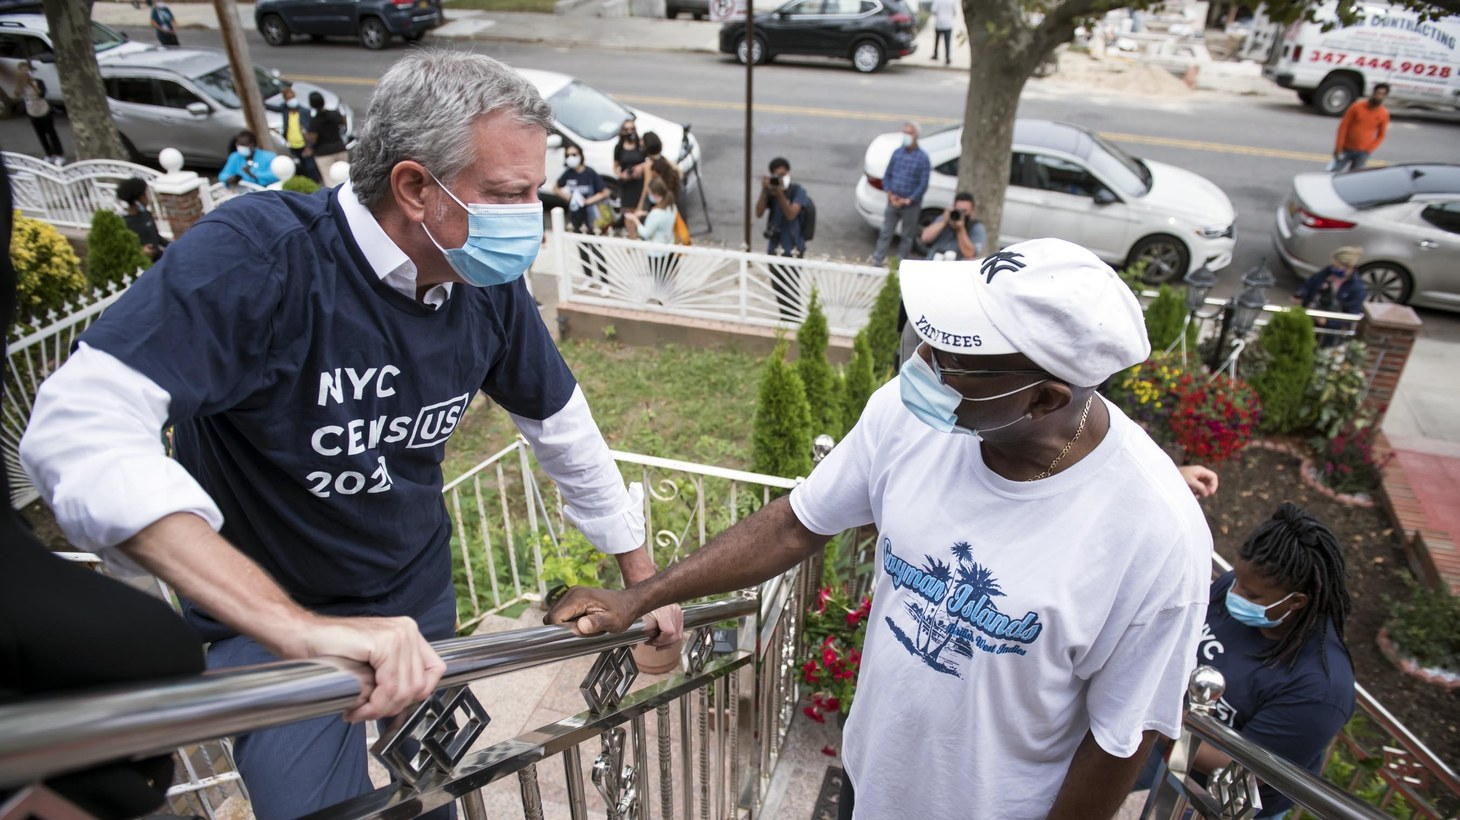 Mayor Bill de Blasio participates in a campaign to encourage New Yorkers to complete the U.S. Census in New York, United States on Thursday, September 19, 2020. Today, November 30, 2020, the Supreme Court hears arguments on whether undocumented immigrants should be excluded from the U.S. Census.